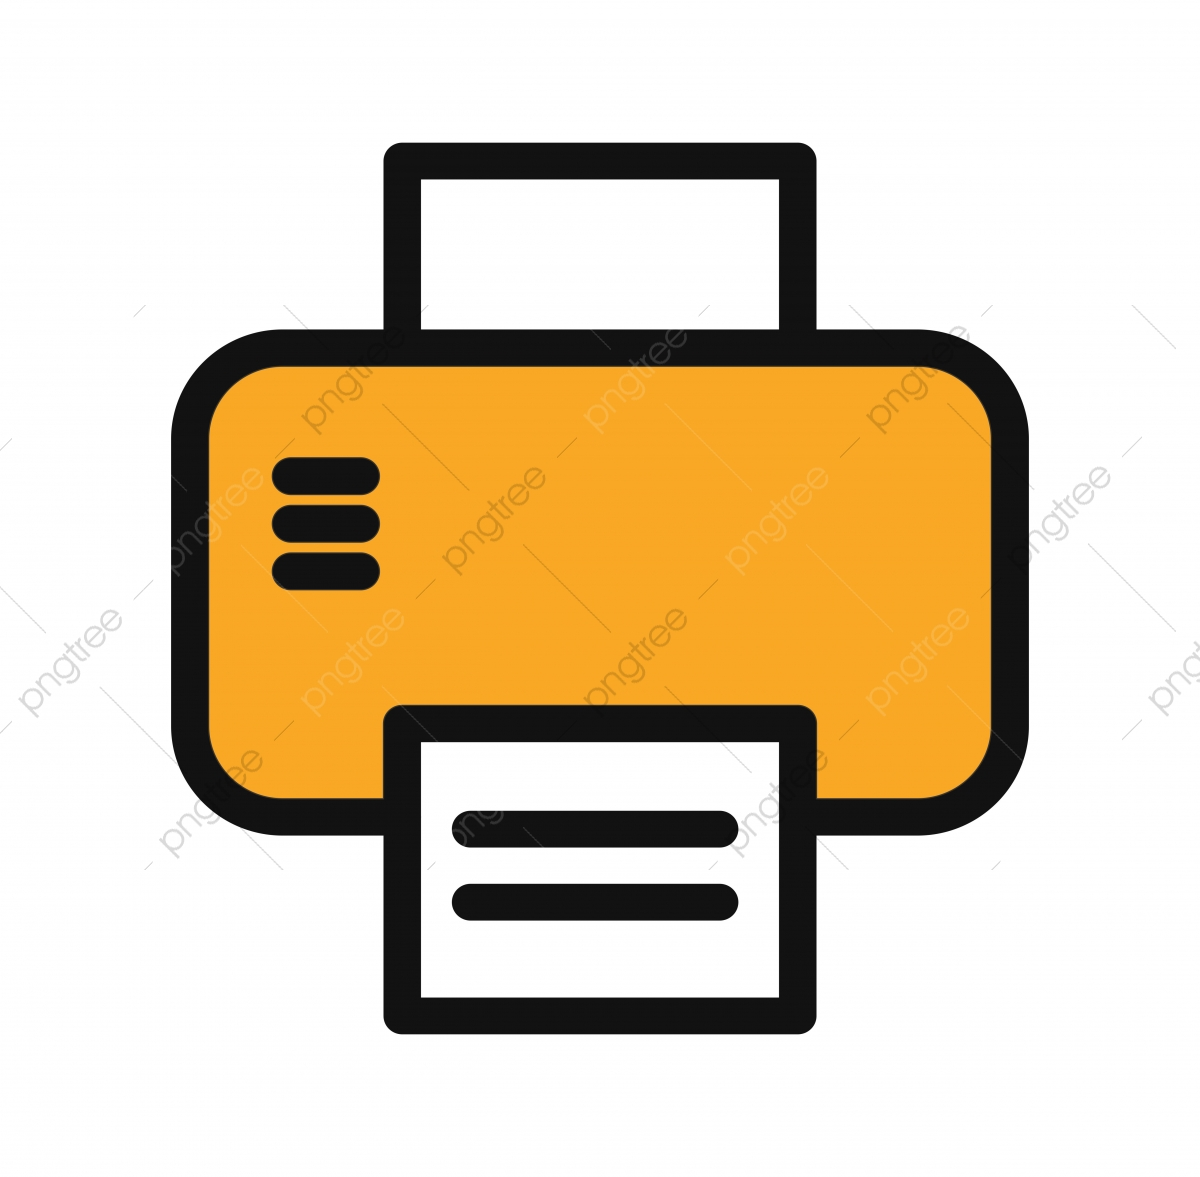 printer vector icon printer icons print printer png and vector with transparent background for free download https pngtree com freepng printer vector icon 4279660 html